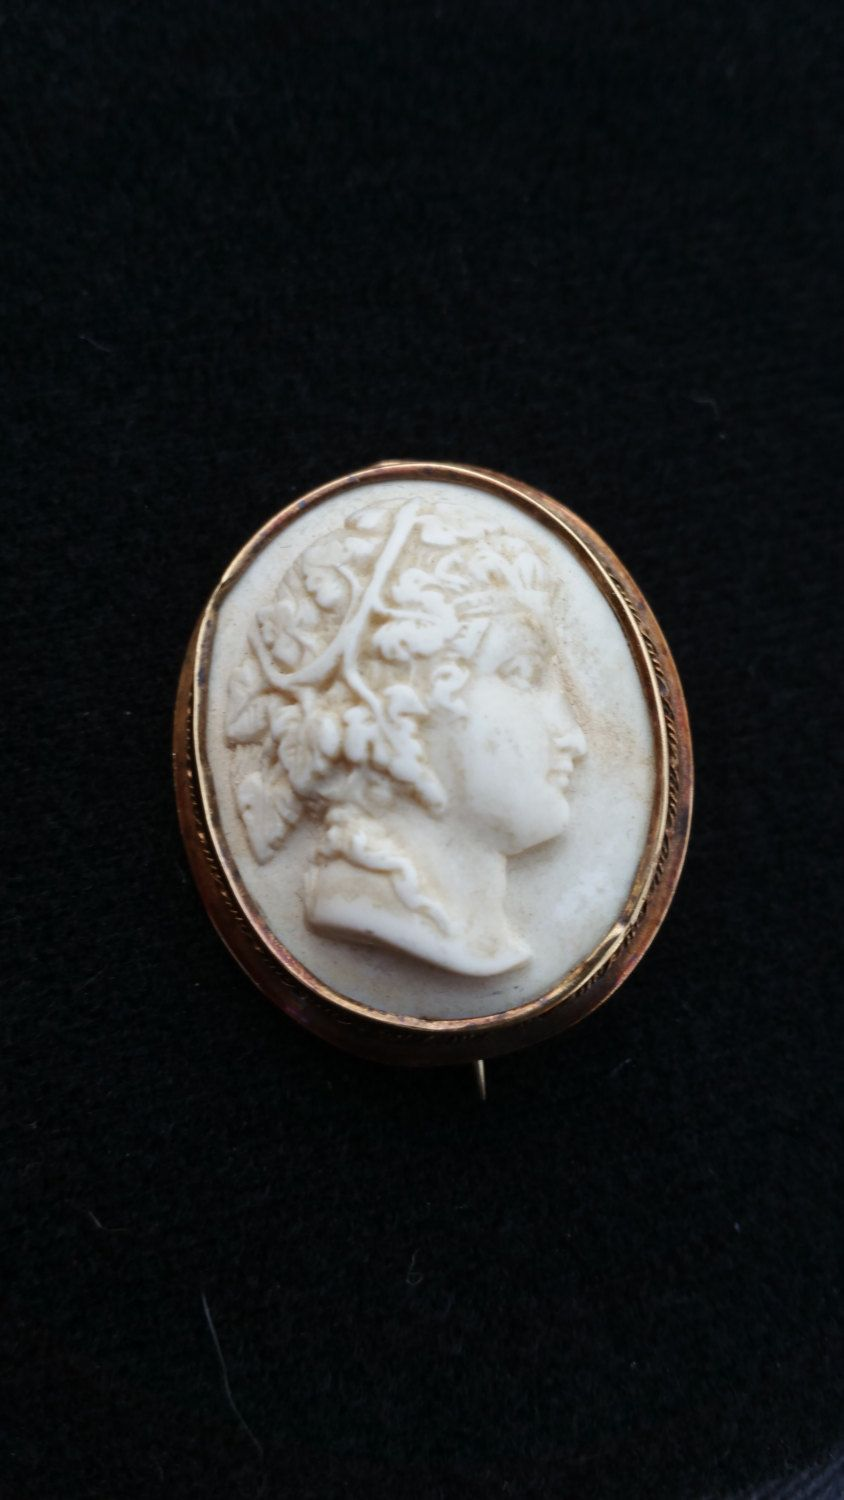 Carved bone cameo - Bacchus cameo - 10 kt gold cameo - gold cameo - bone cameo - high relief cameo - antique gold - cameo brooch - by SteamyAntiquities on Etsy